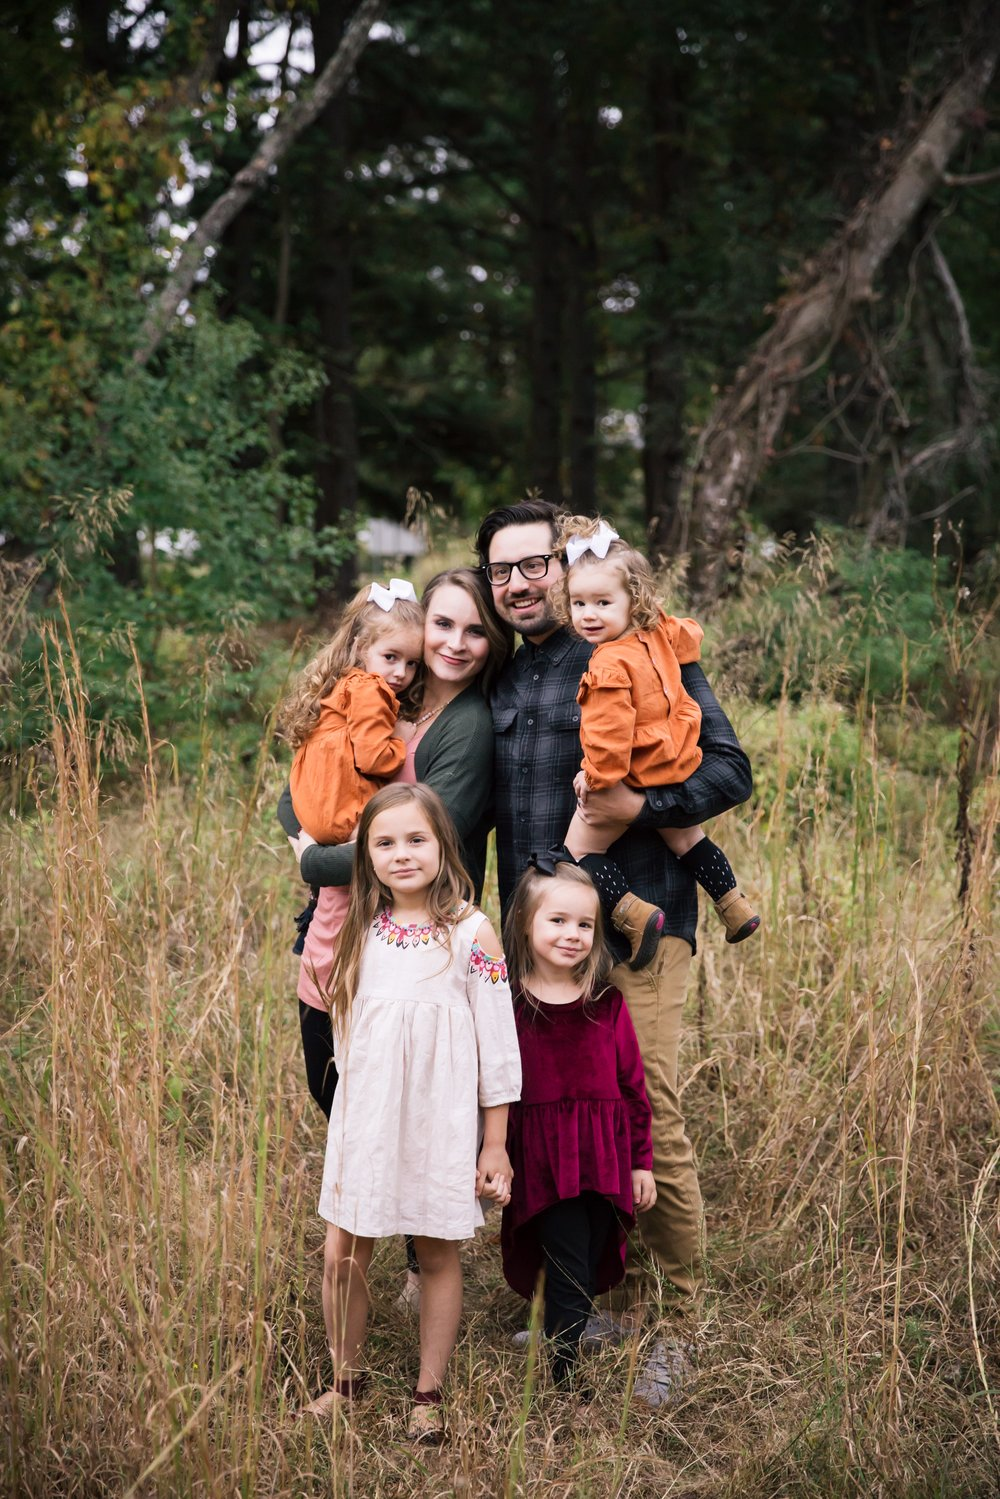 Anthony & Stephanie Byrnes - The Byrnes Family travels fulltime in their 2005 Keystone Cougar Bunkhouse with their 4 daughters and small pup. Nature enthusiasts and adventure seekers, they decided in 2017 to sell their home in Arkansas and travel the U.S. for an experience of a lifetime. Because of their struggle to find the answers to all their questions as they got started in full-time RVing, they founded the Our Adventure Diary blog and resource community. You can also follow their adventures on Instagram at @thosebyrnesgirls and @thedaddiaries .